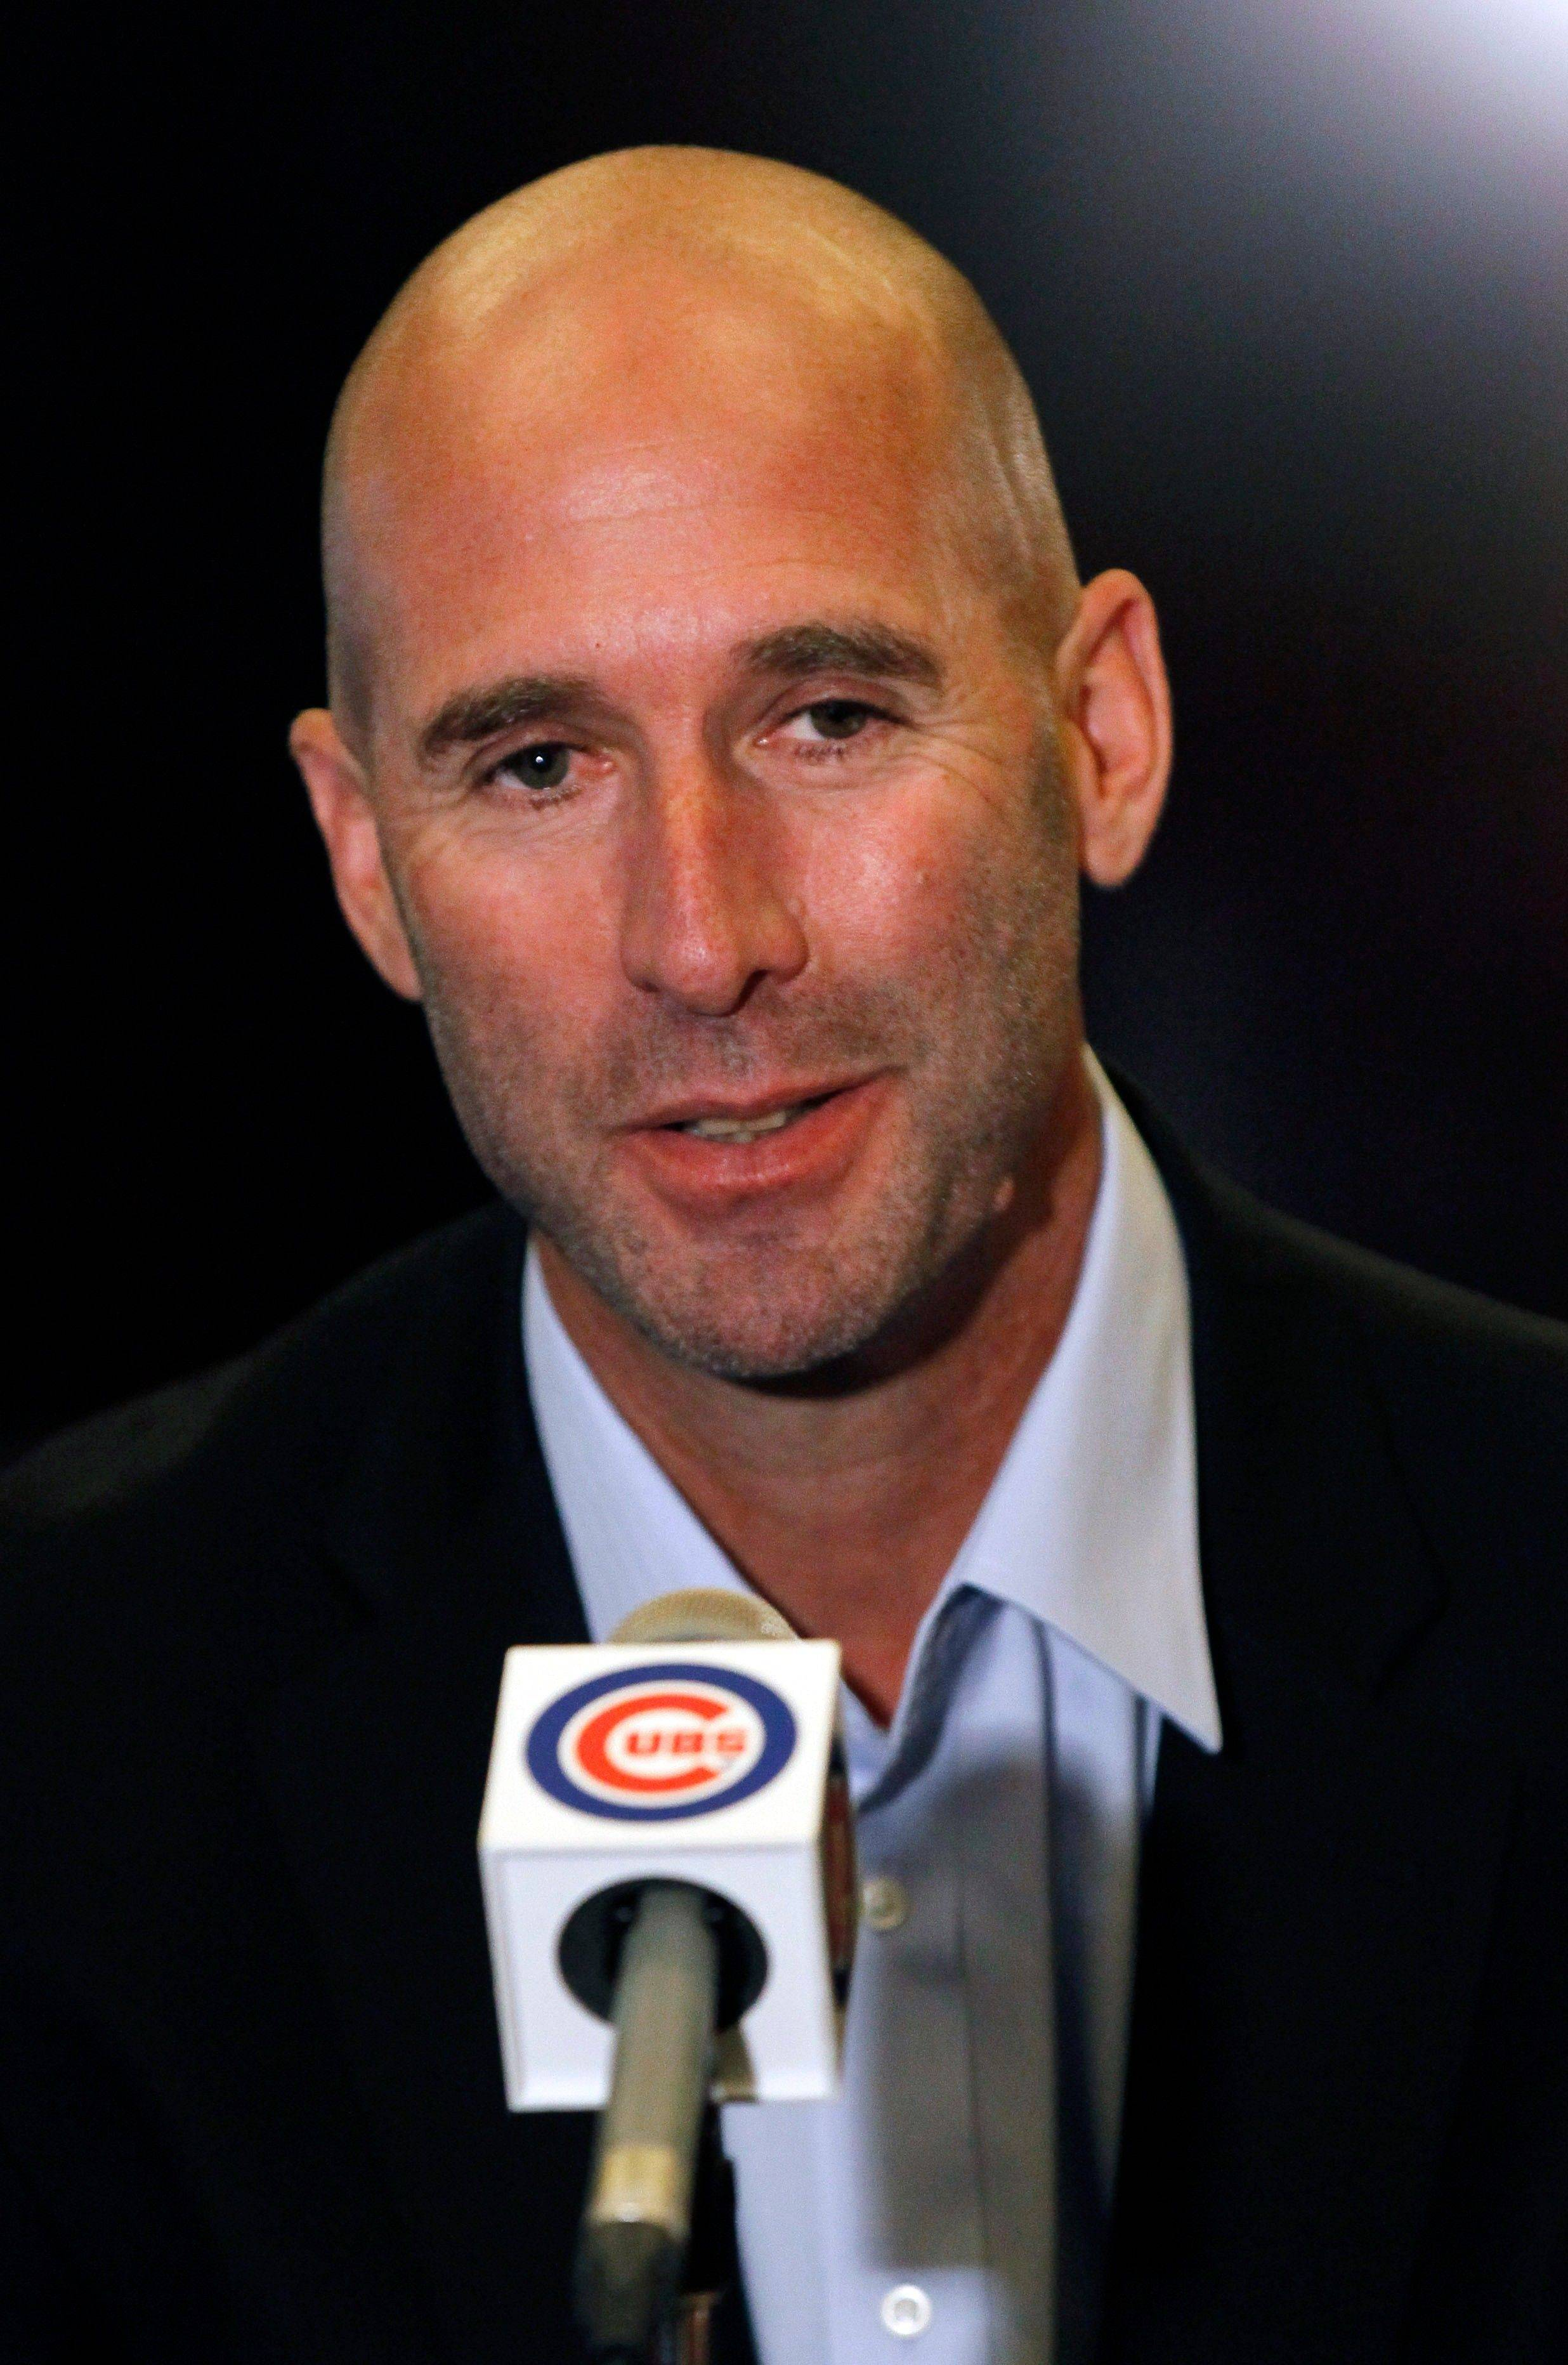 Milwaukee Brewers hitting coach Dale Sveum appears at a news conference after his interviews for the Cubs manager's job Monday at Wrigley Field.